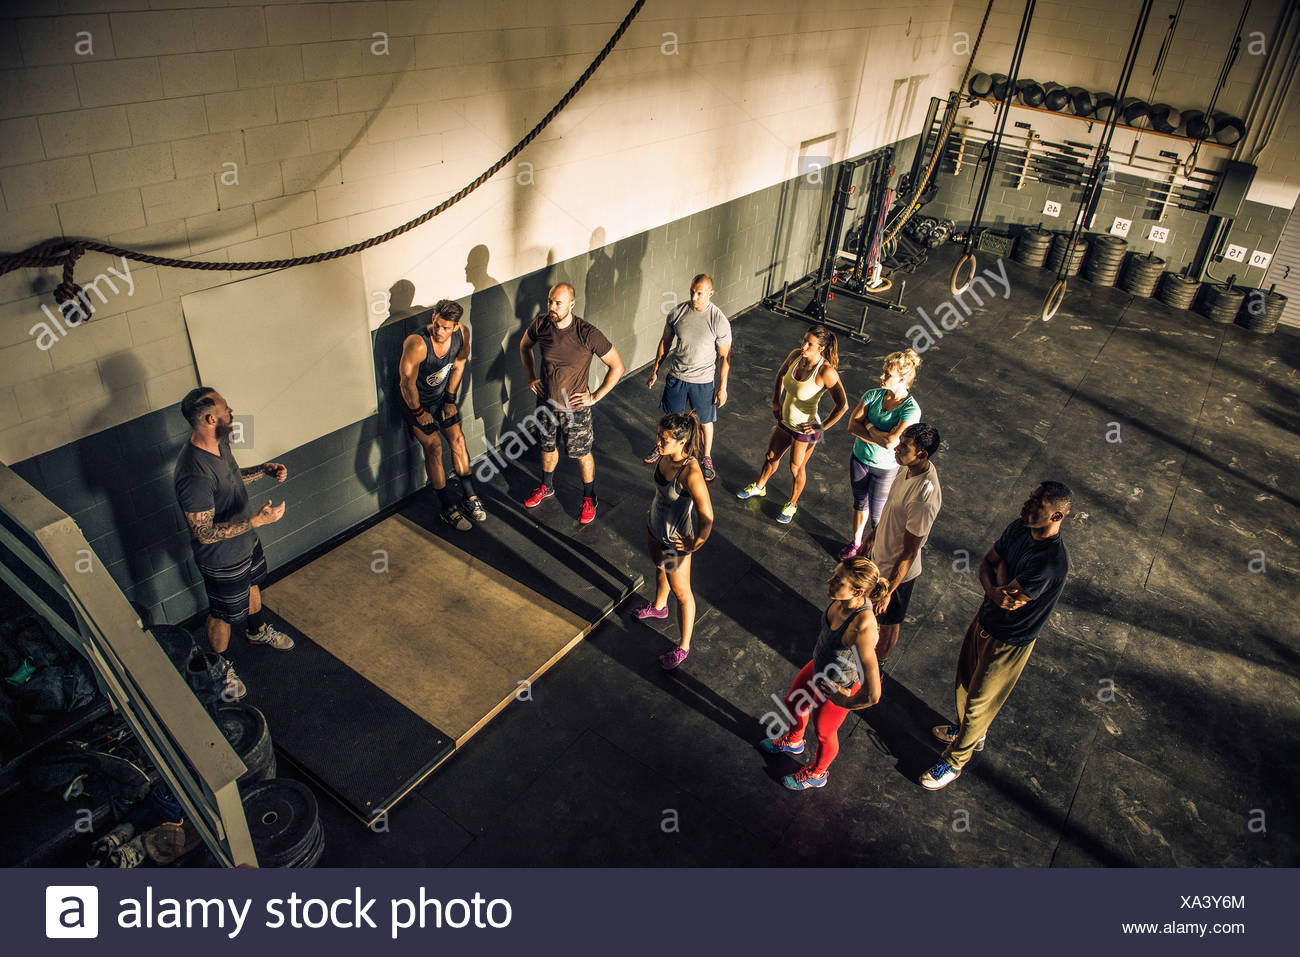 Trainer talking to fitness group in gym - Stock Image